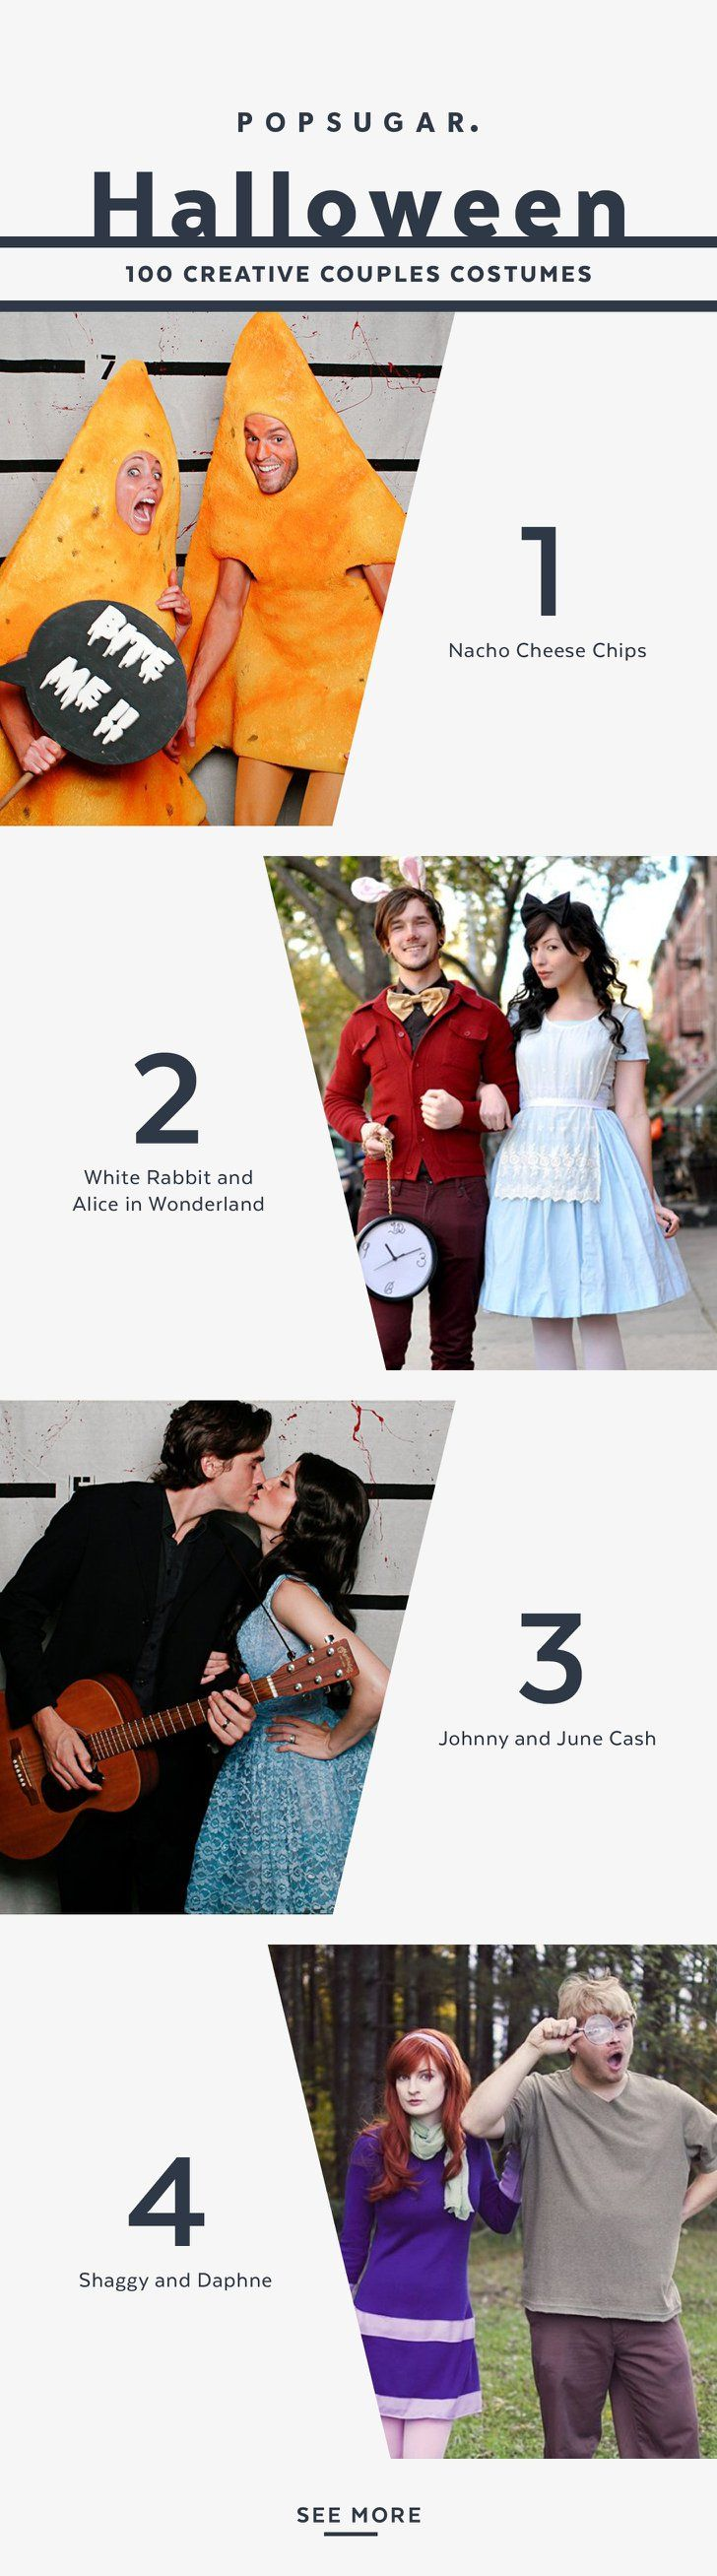 You can be the best dressed couple this Halloween with any of these costumes!